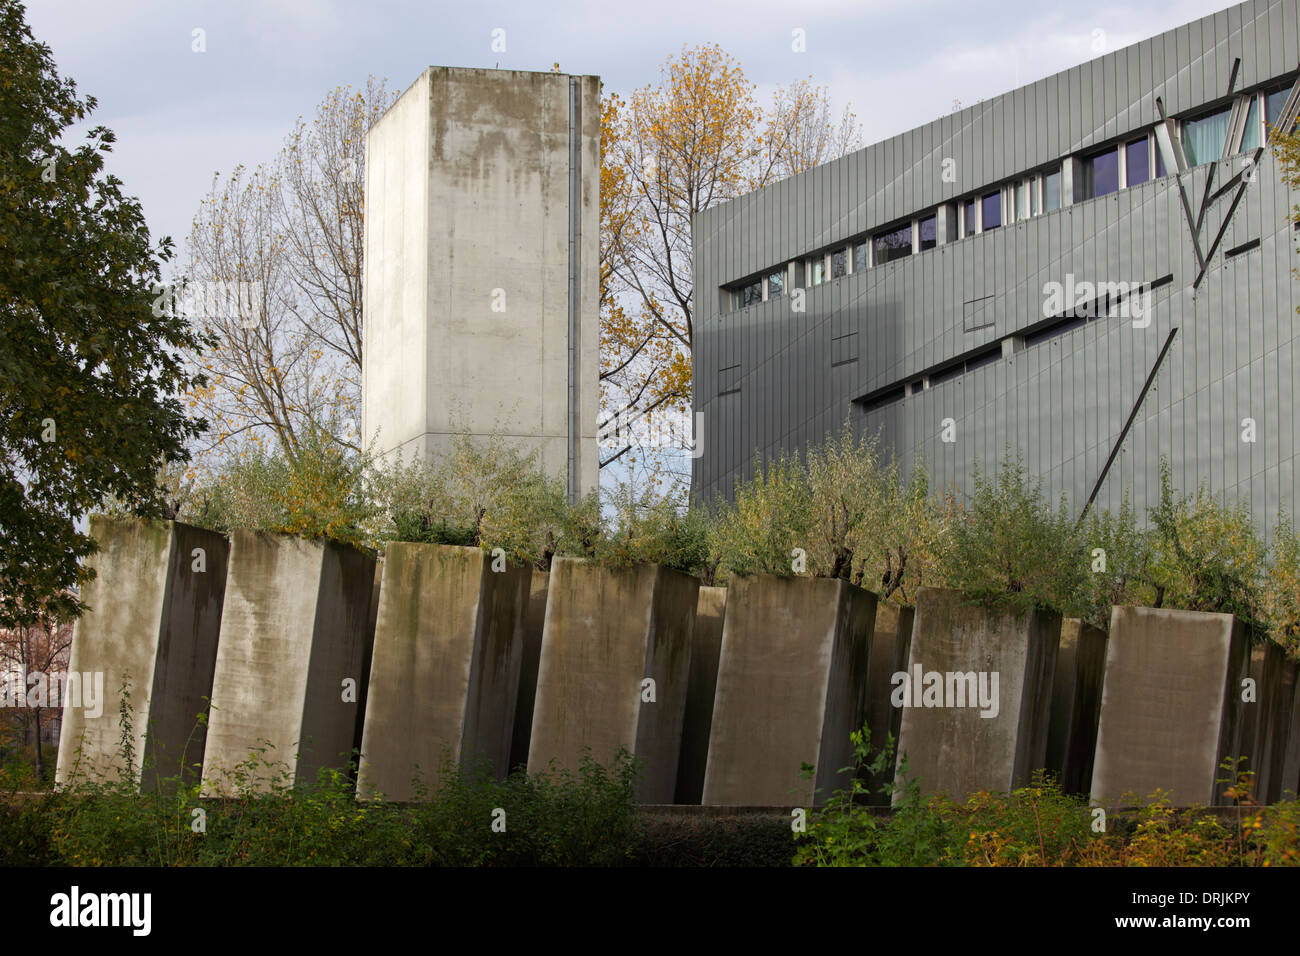 Oleaster in the Garden of Exile with the Jewish Museum's building in the background, Berlin, Germany - Stock Image